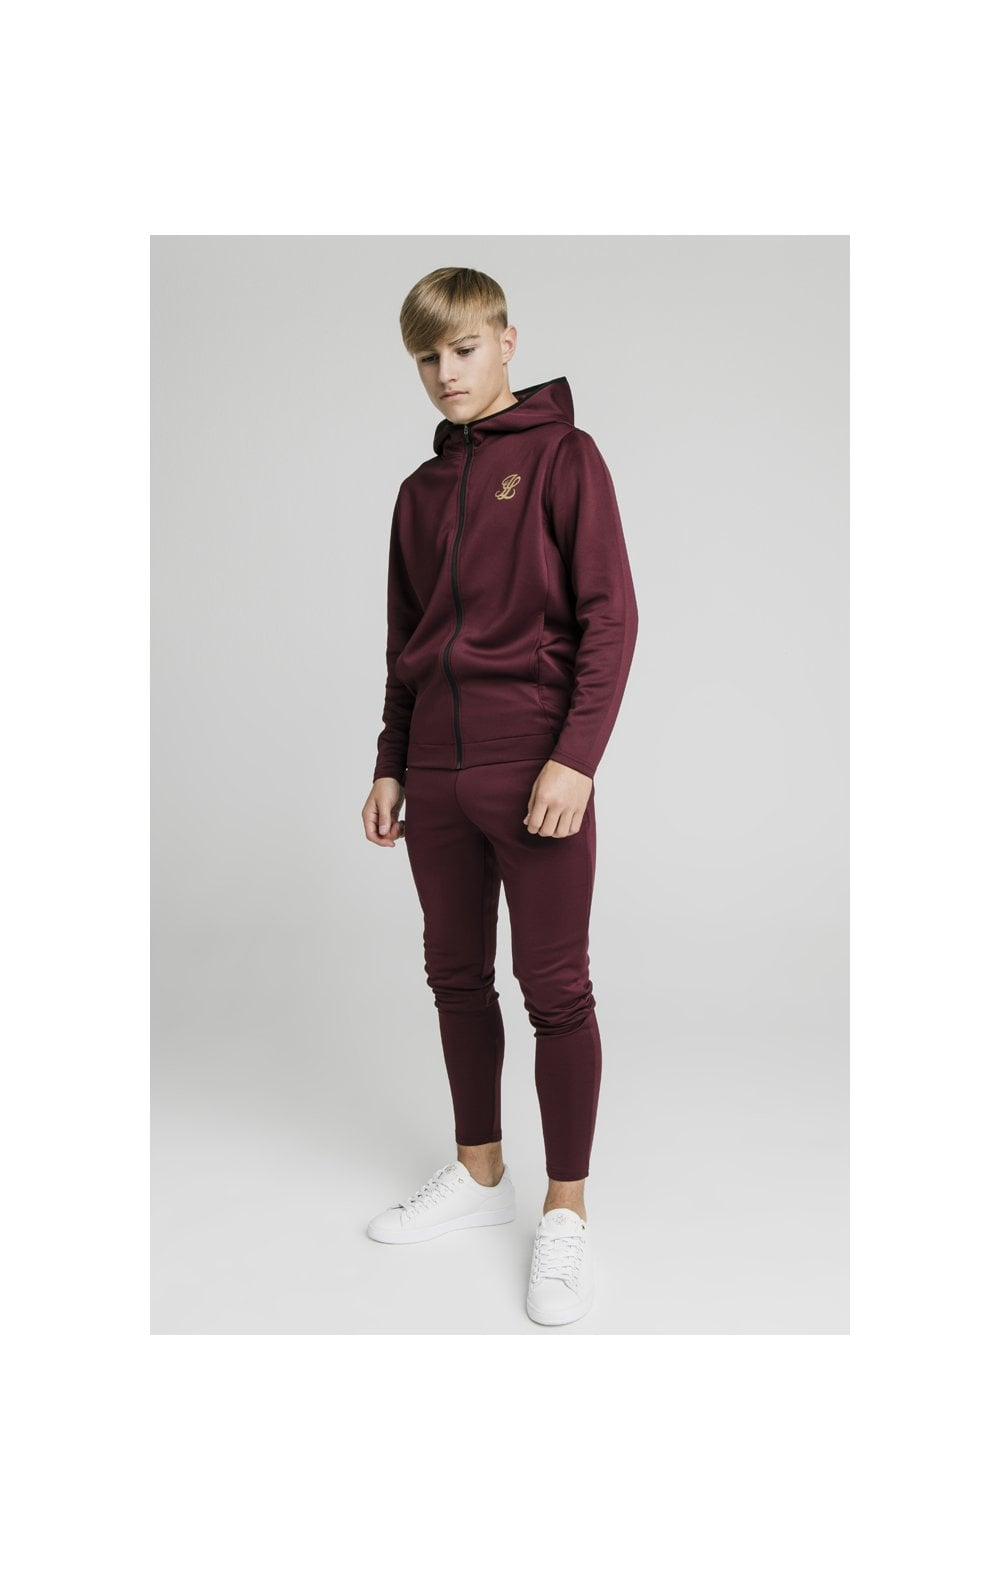 Load image into Gallery viewer, Illusive London Agility Zip Through Hoodie - Burgundy (6)